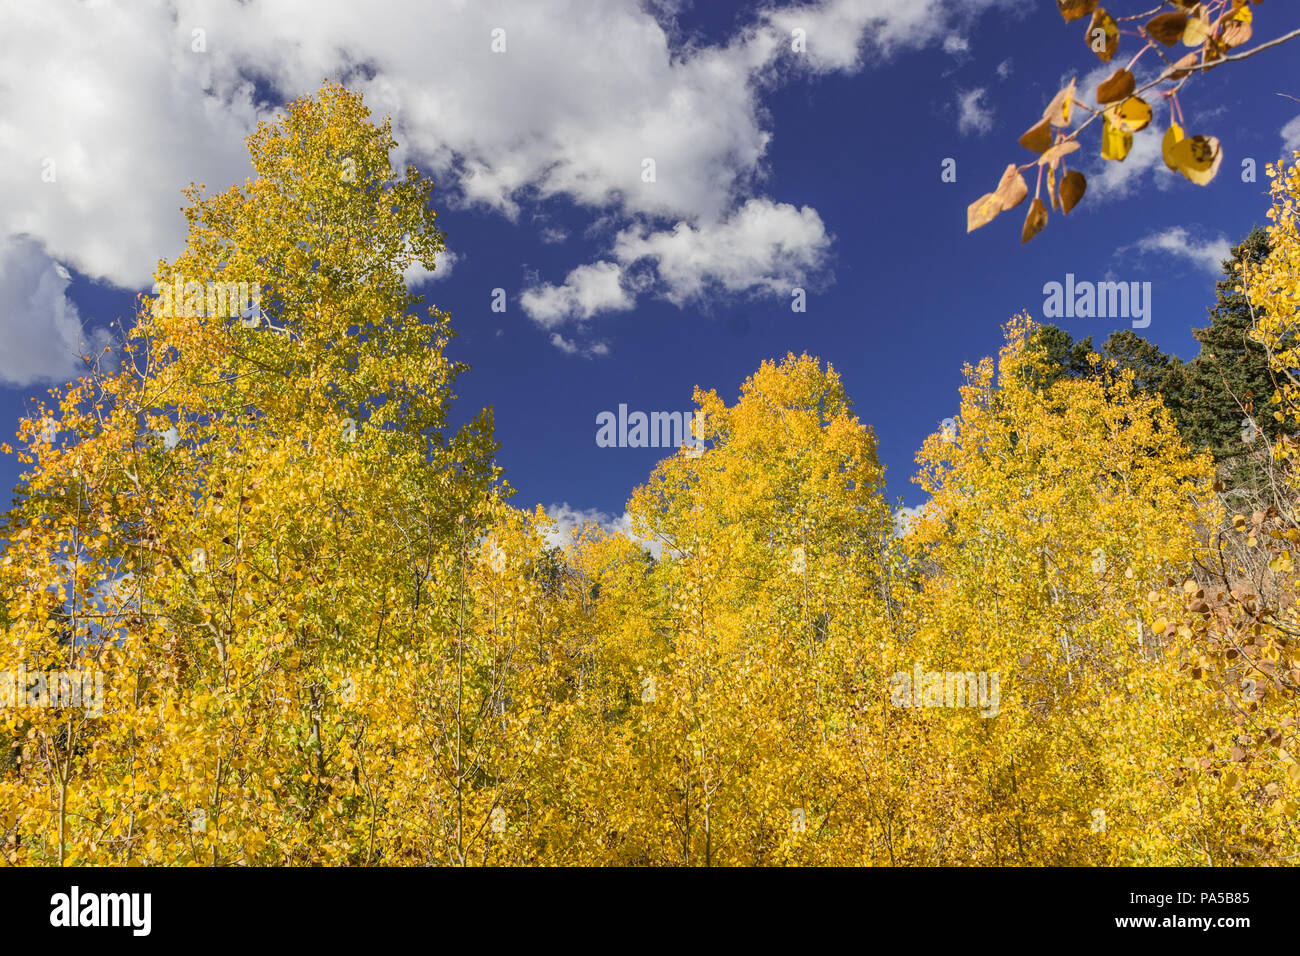 Beautiful fall colors!  Aspen leaves changing color in the Rocky Mountains with a gorgeous cloudy blue sky. - Stock Image